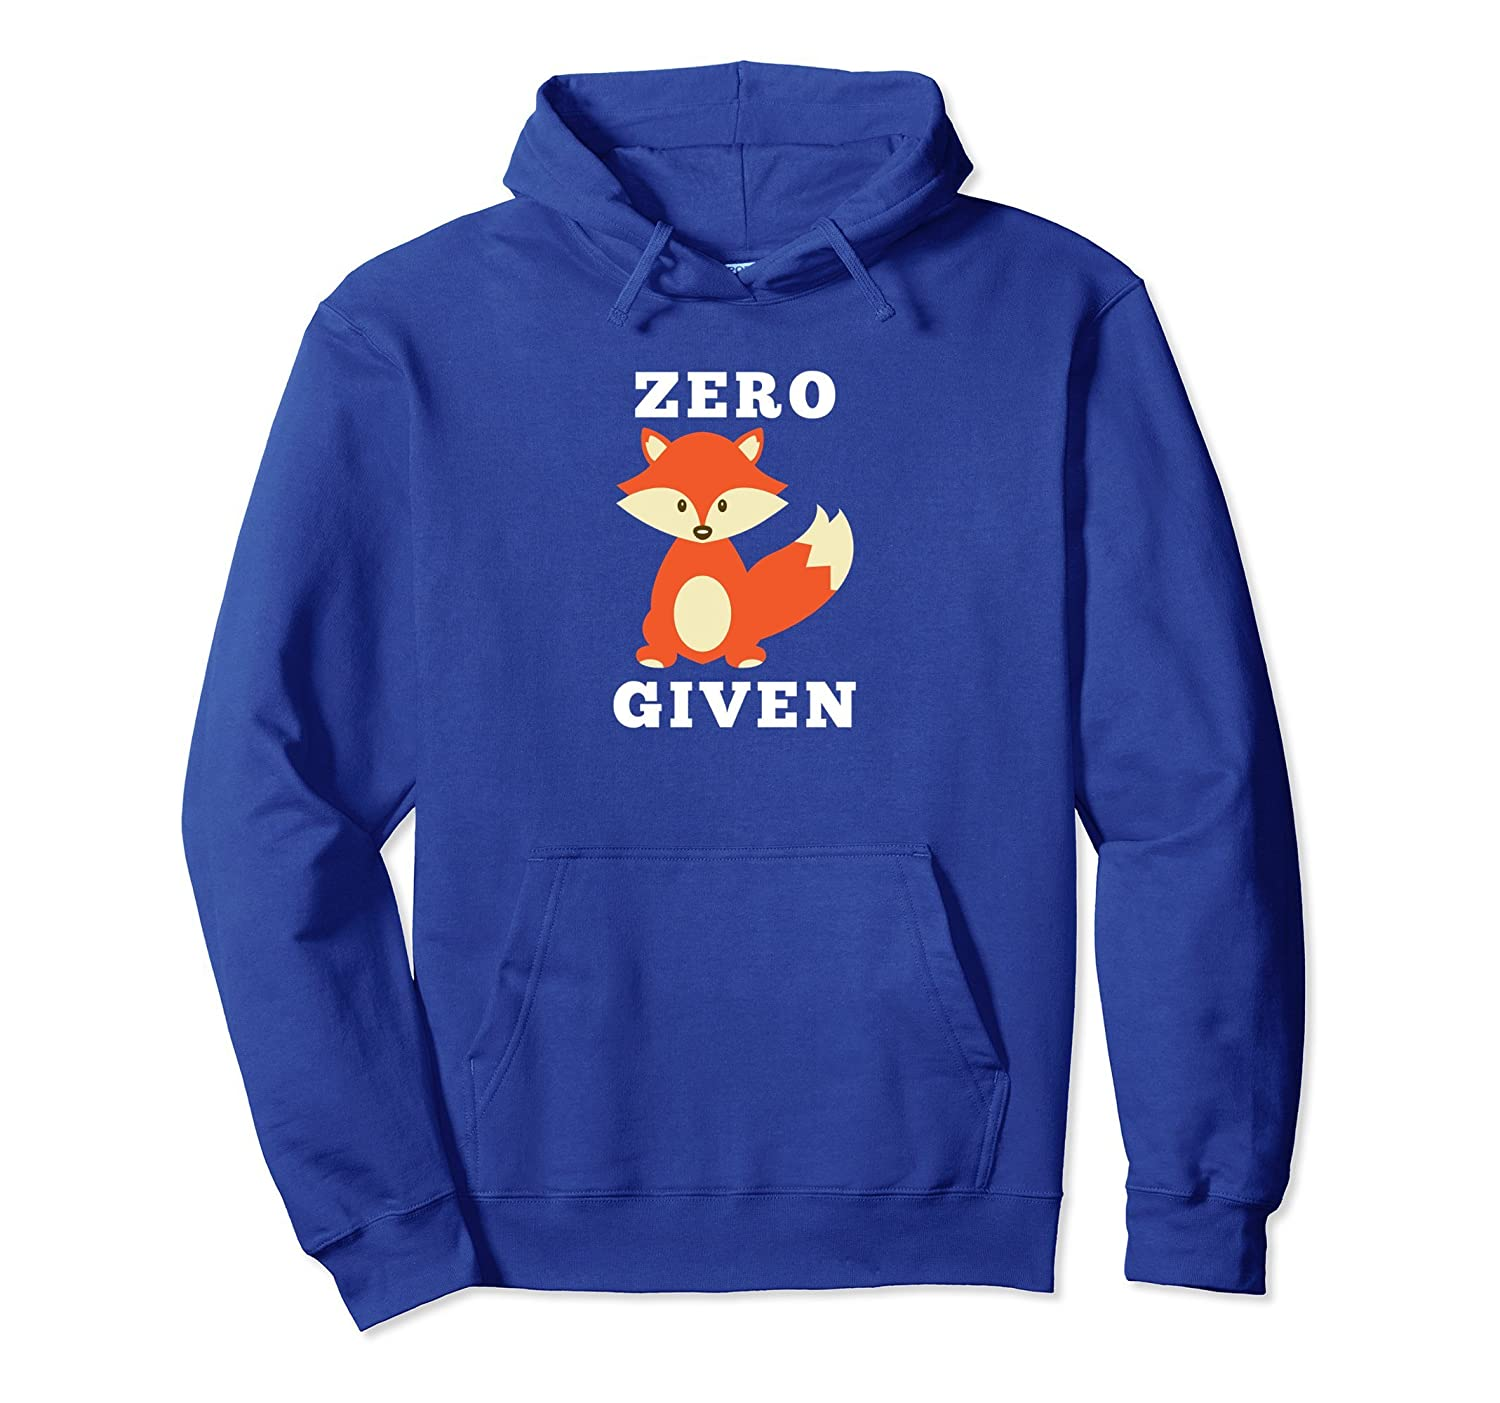 Zero Fox Given - Hilarious Novelty Pullover Hoodie-TH